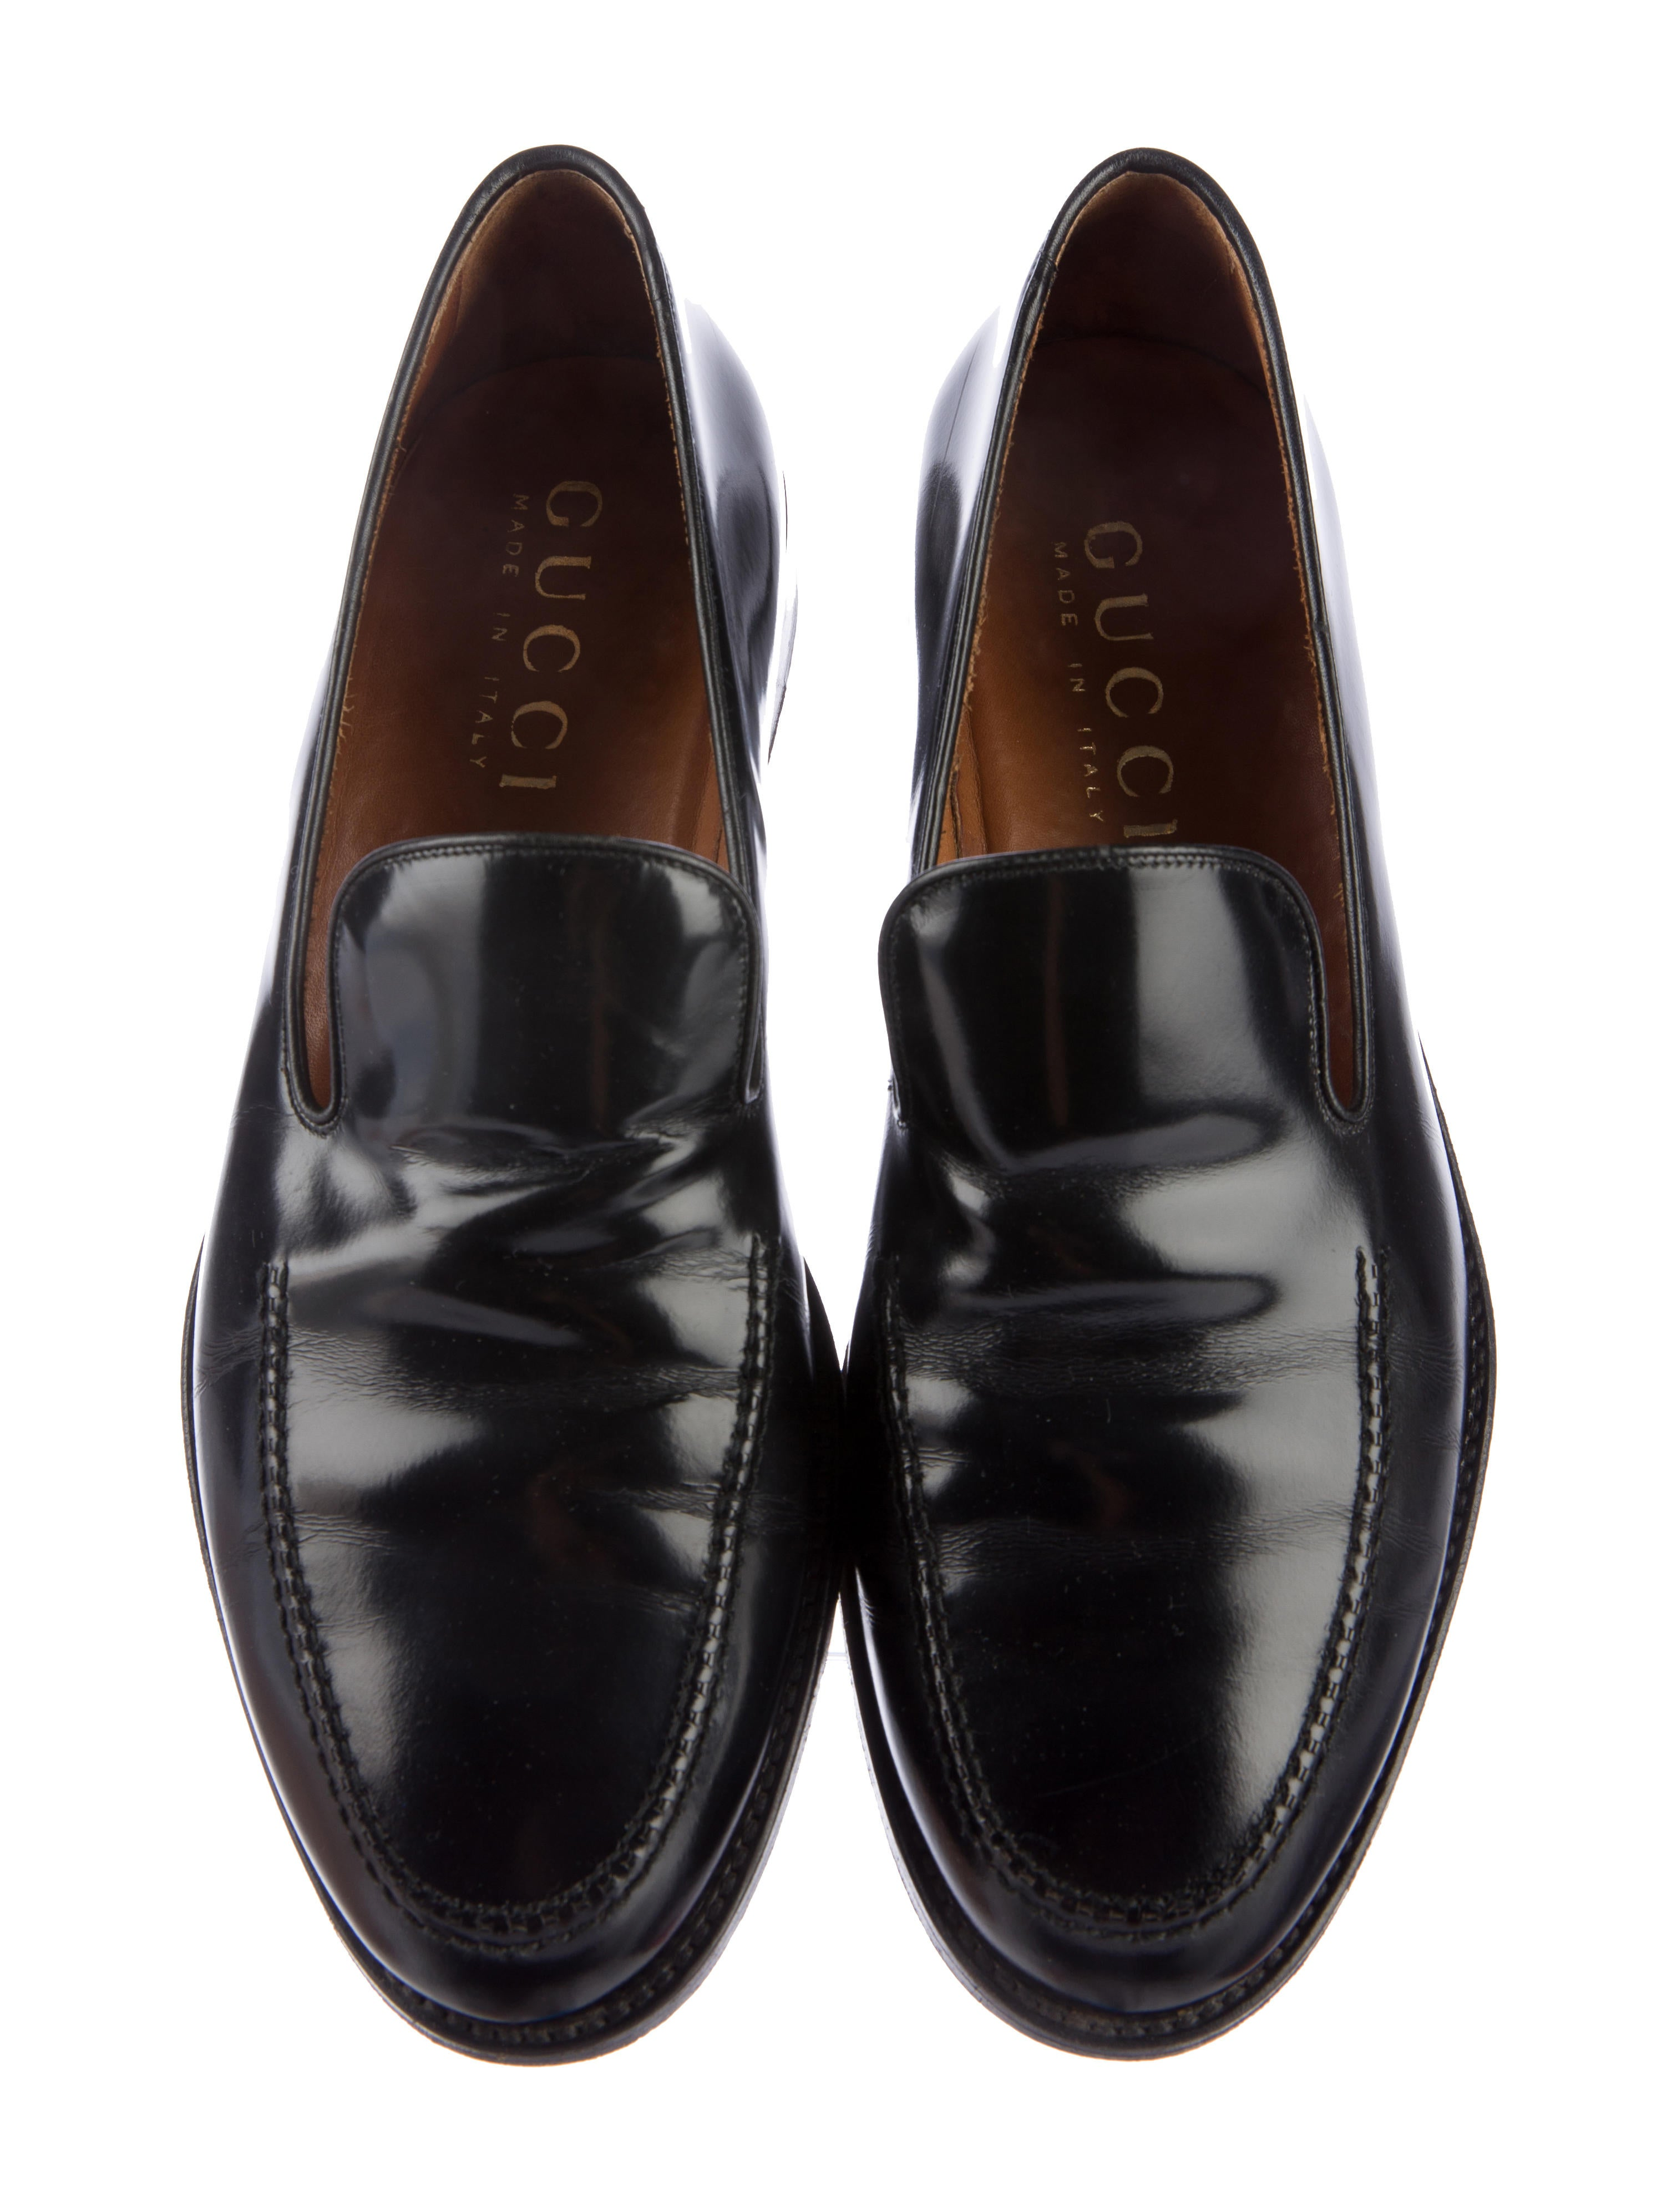 Gucci Leather Dress Loafers - Shoes - GUC143315 | The RealReal